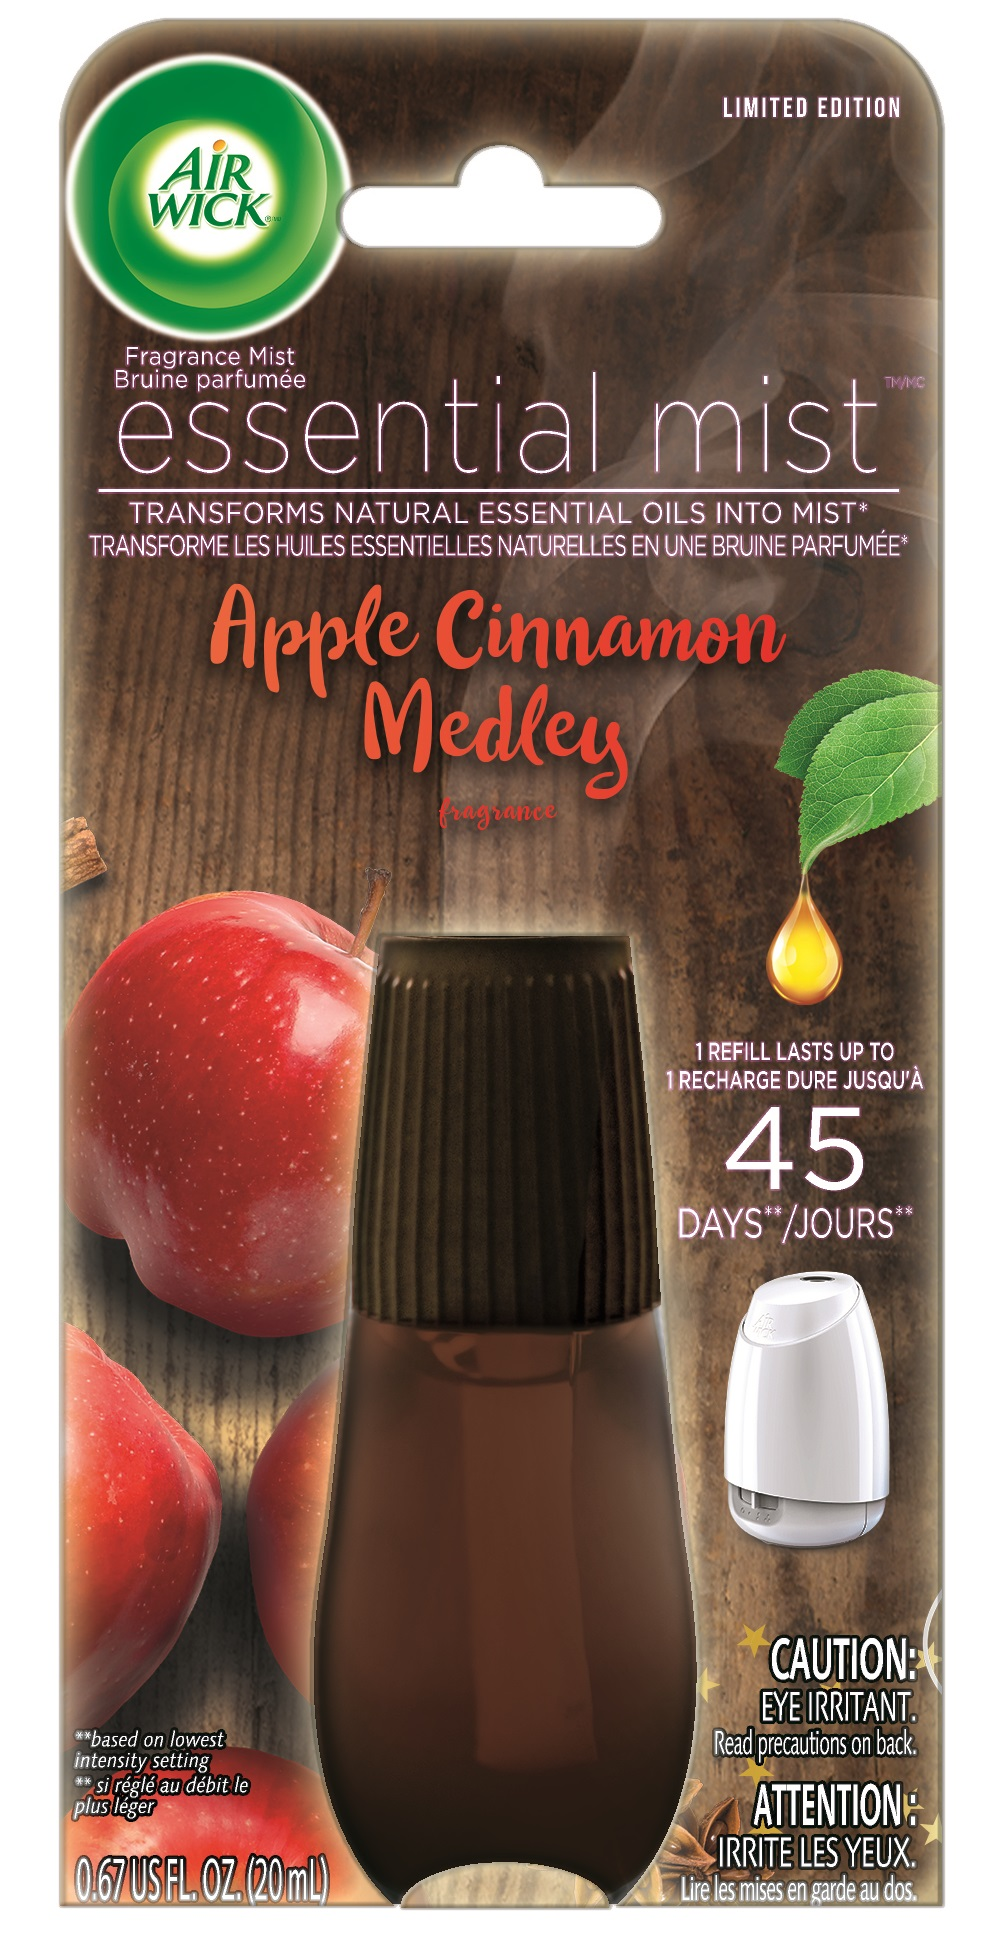 Air Wick Apple & Cinnamon Scented Essential Mist Refill - 1ct